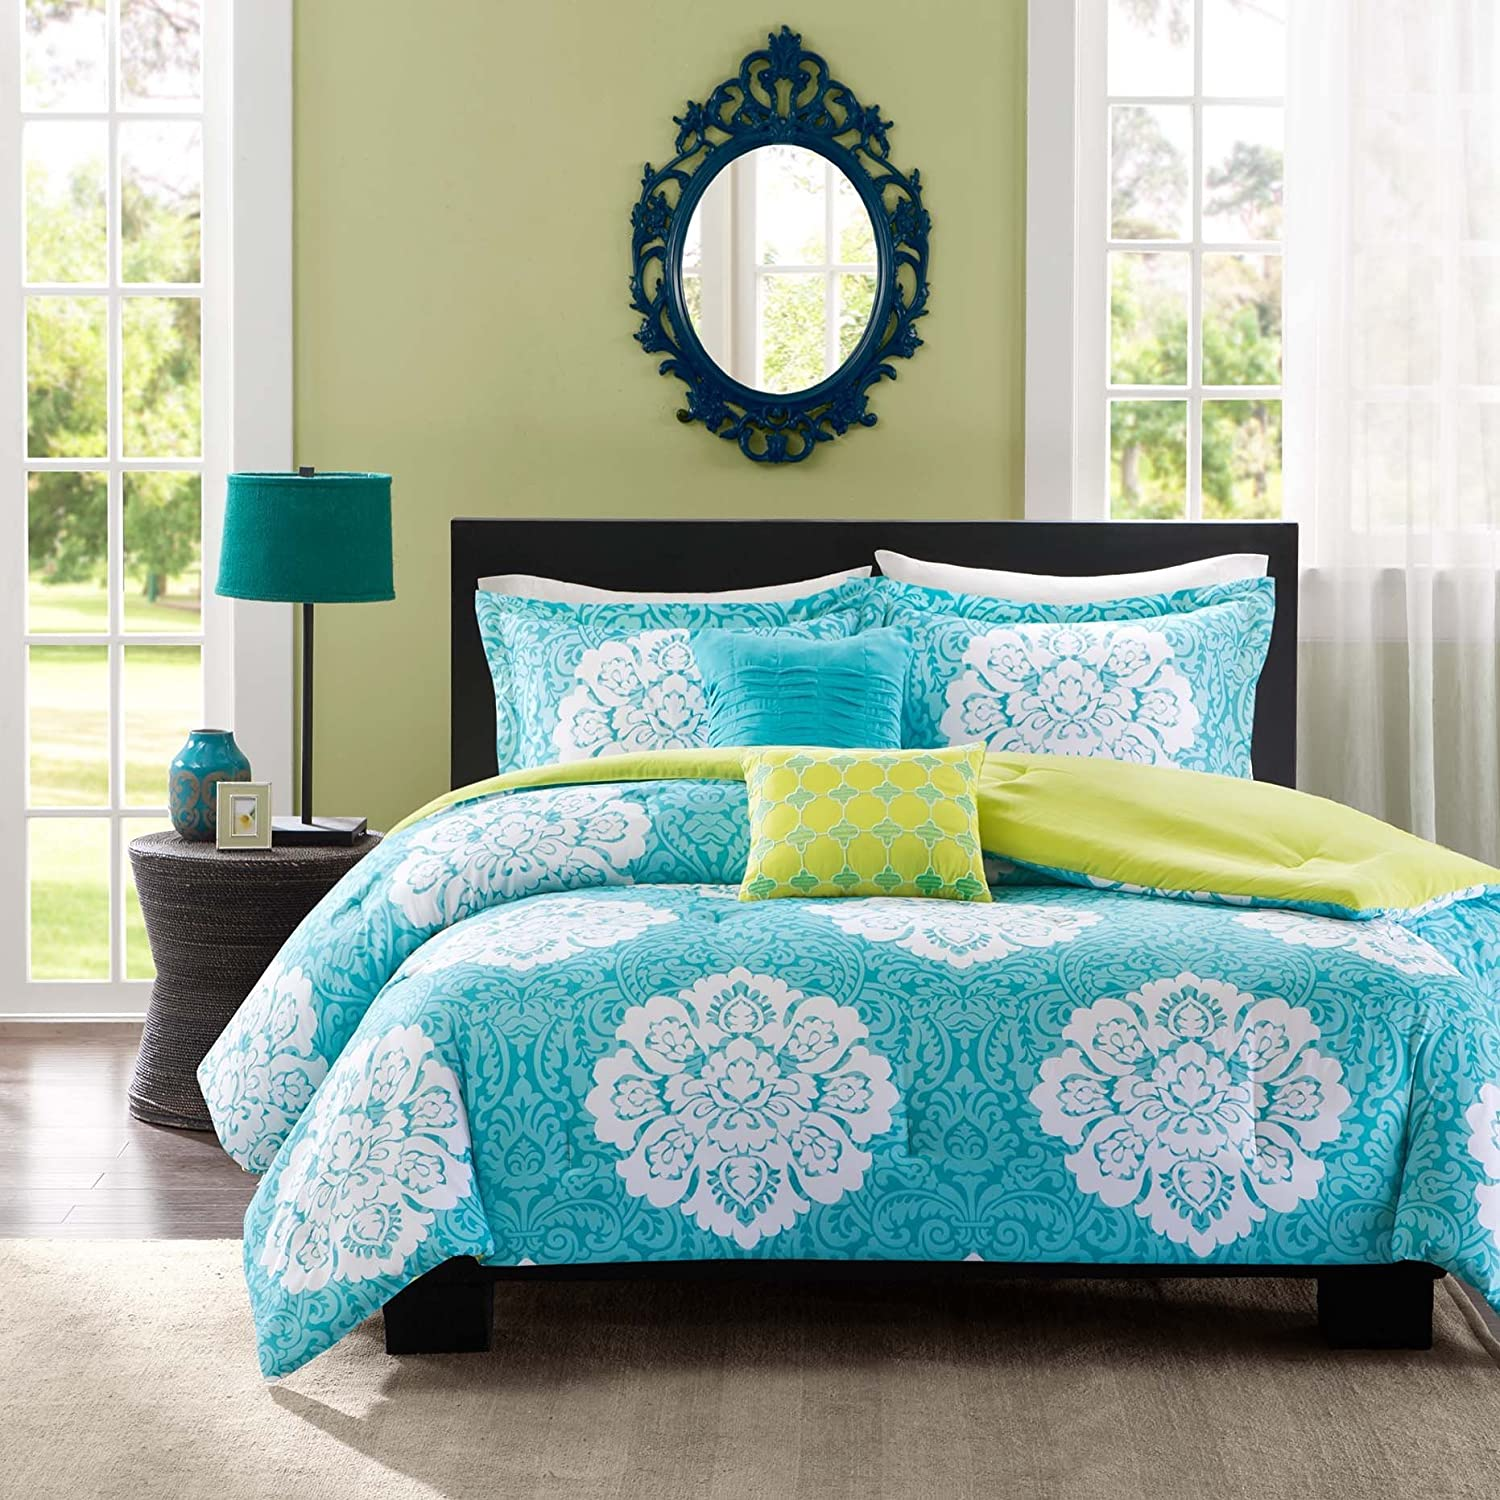 teen girl bedding and bedding sets – ease bedding with style - aqua blue lime green floral damask print comforter bedding set girls teenfull twin (twin